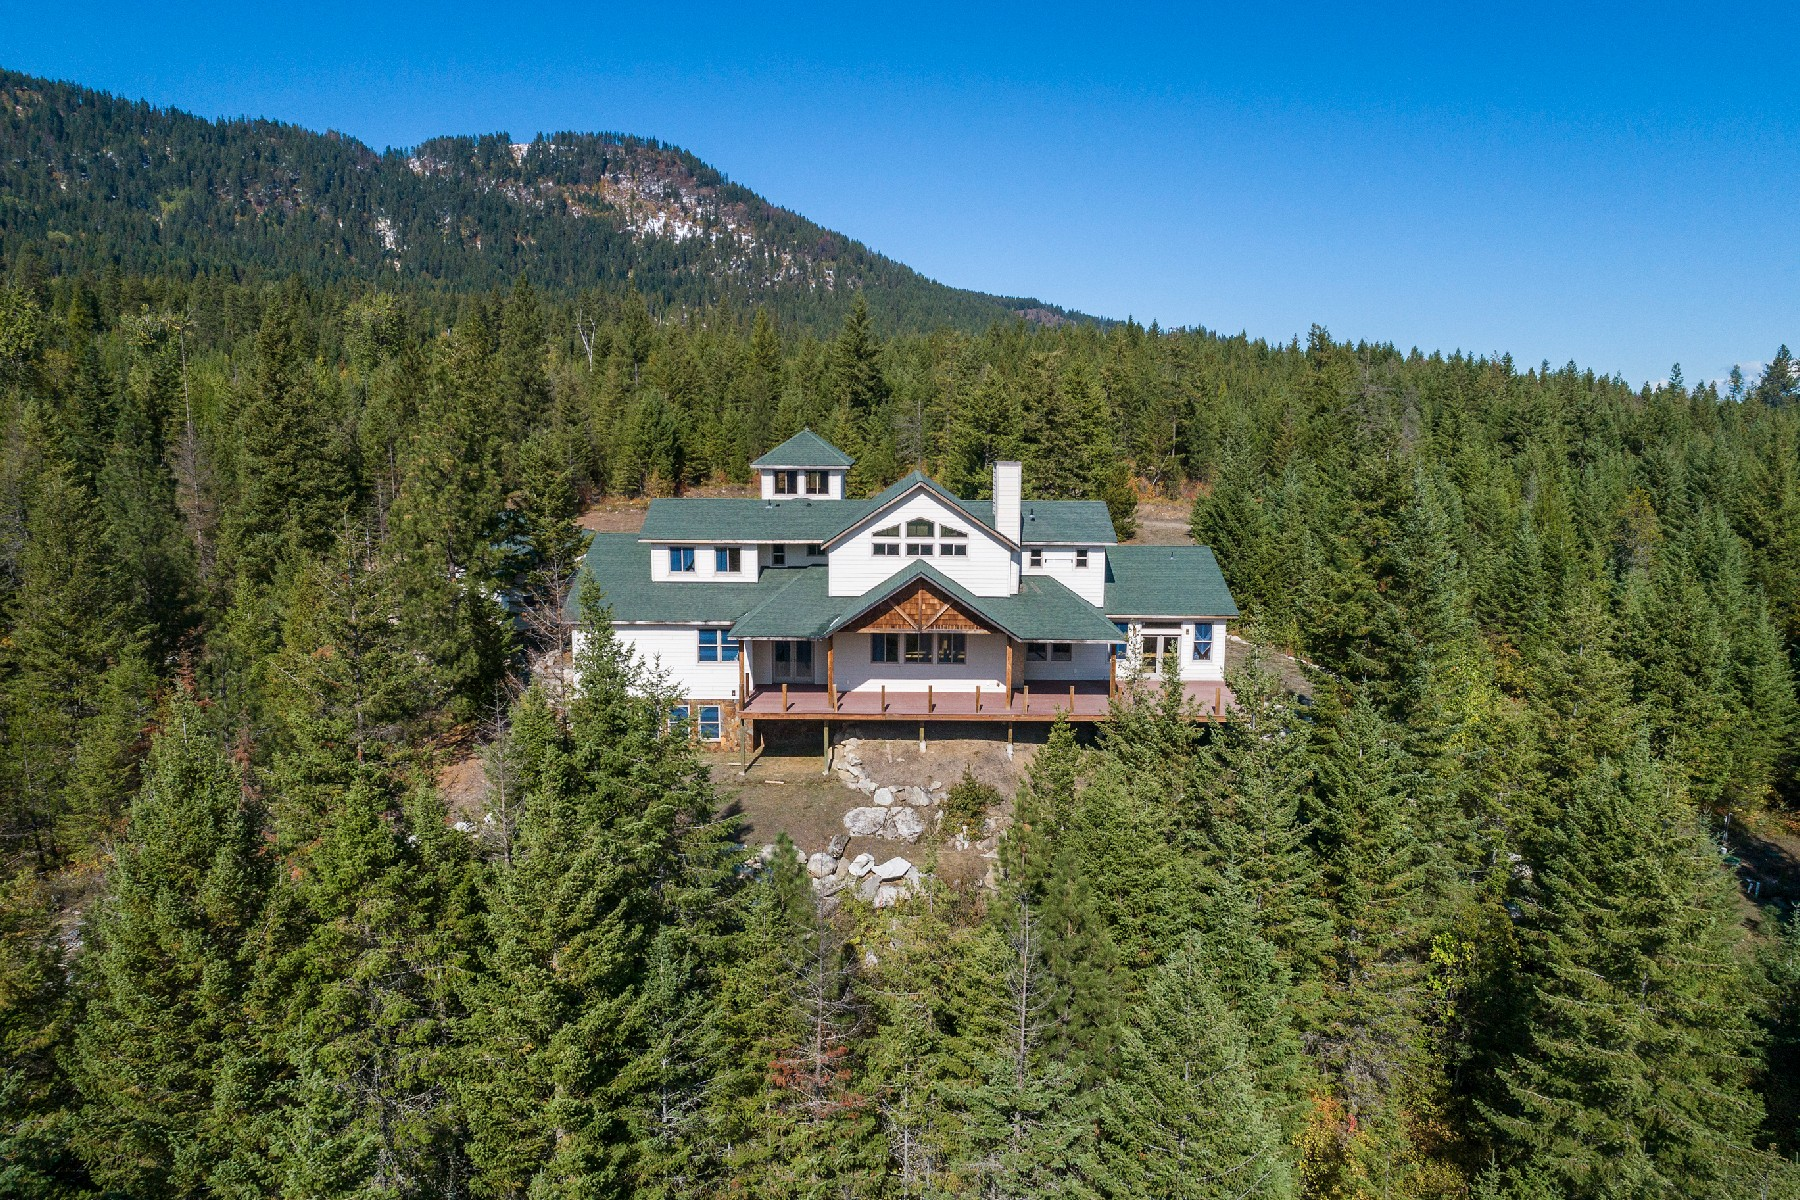 Single Family Homes for Sale at Partial Finished Custom Home On 20+ Acres 990 Panhandle Estates Drive Cocolalla, Idaho 83813 United States